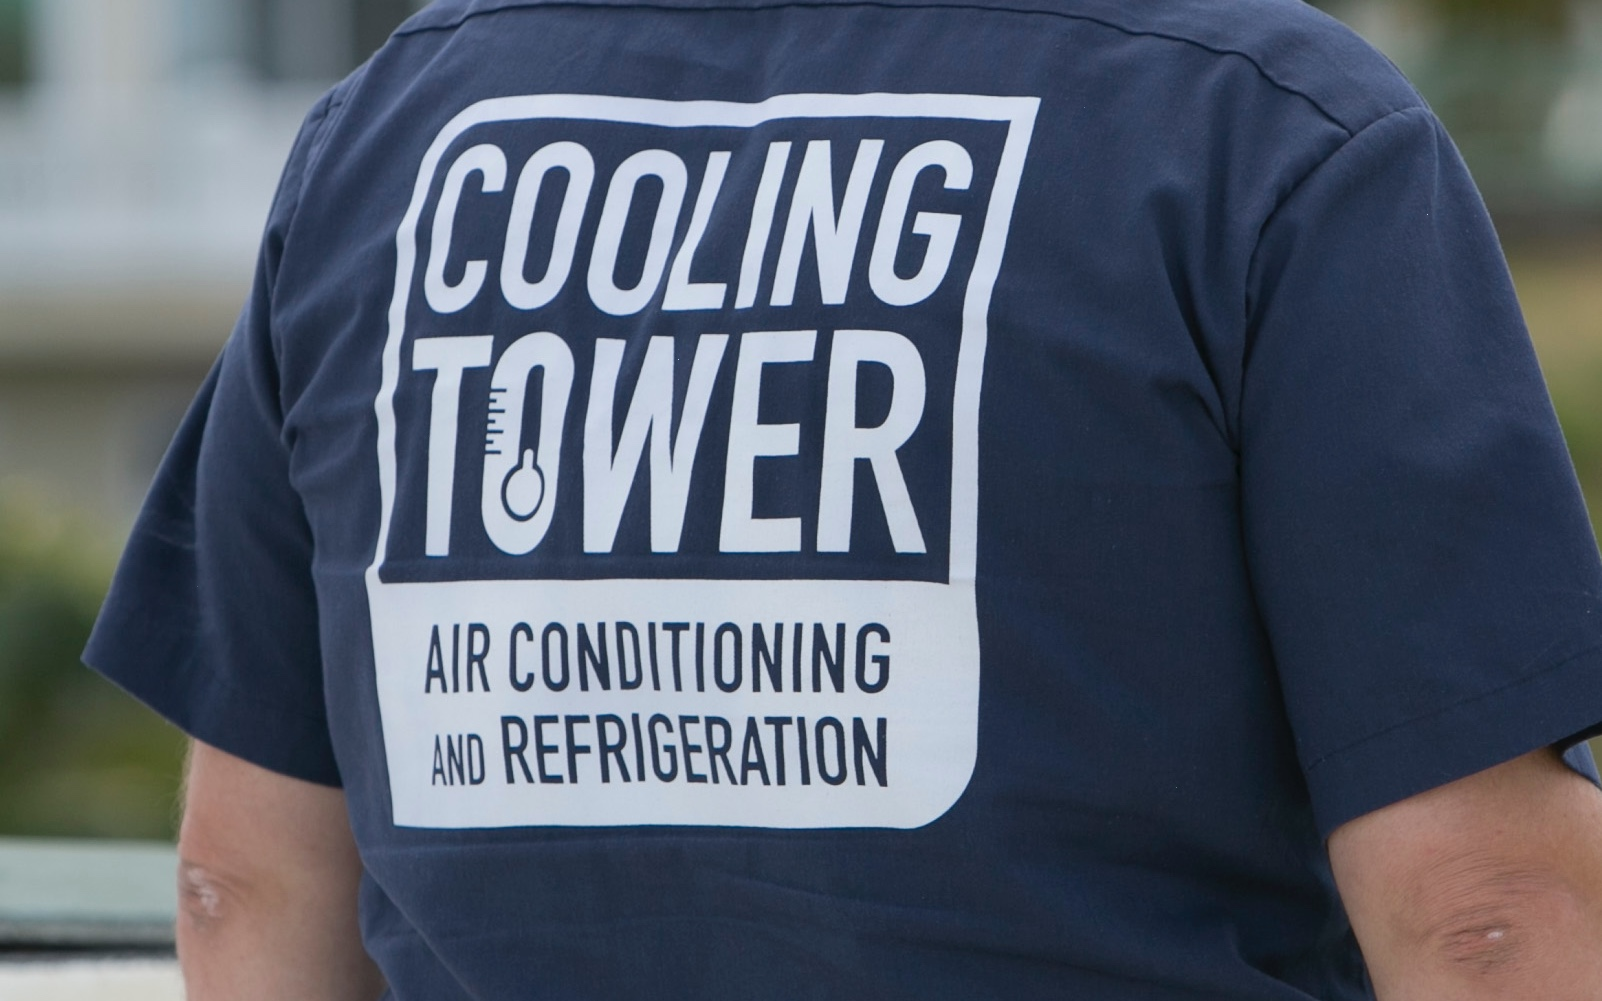 Cooling Tower Air Conditioning and Refrigeration